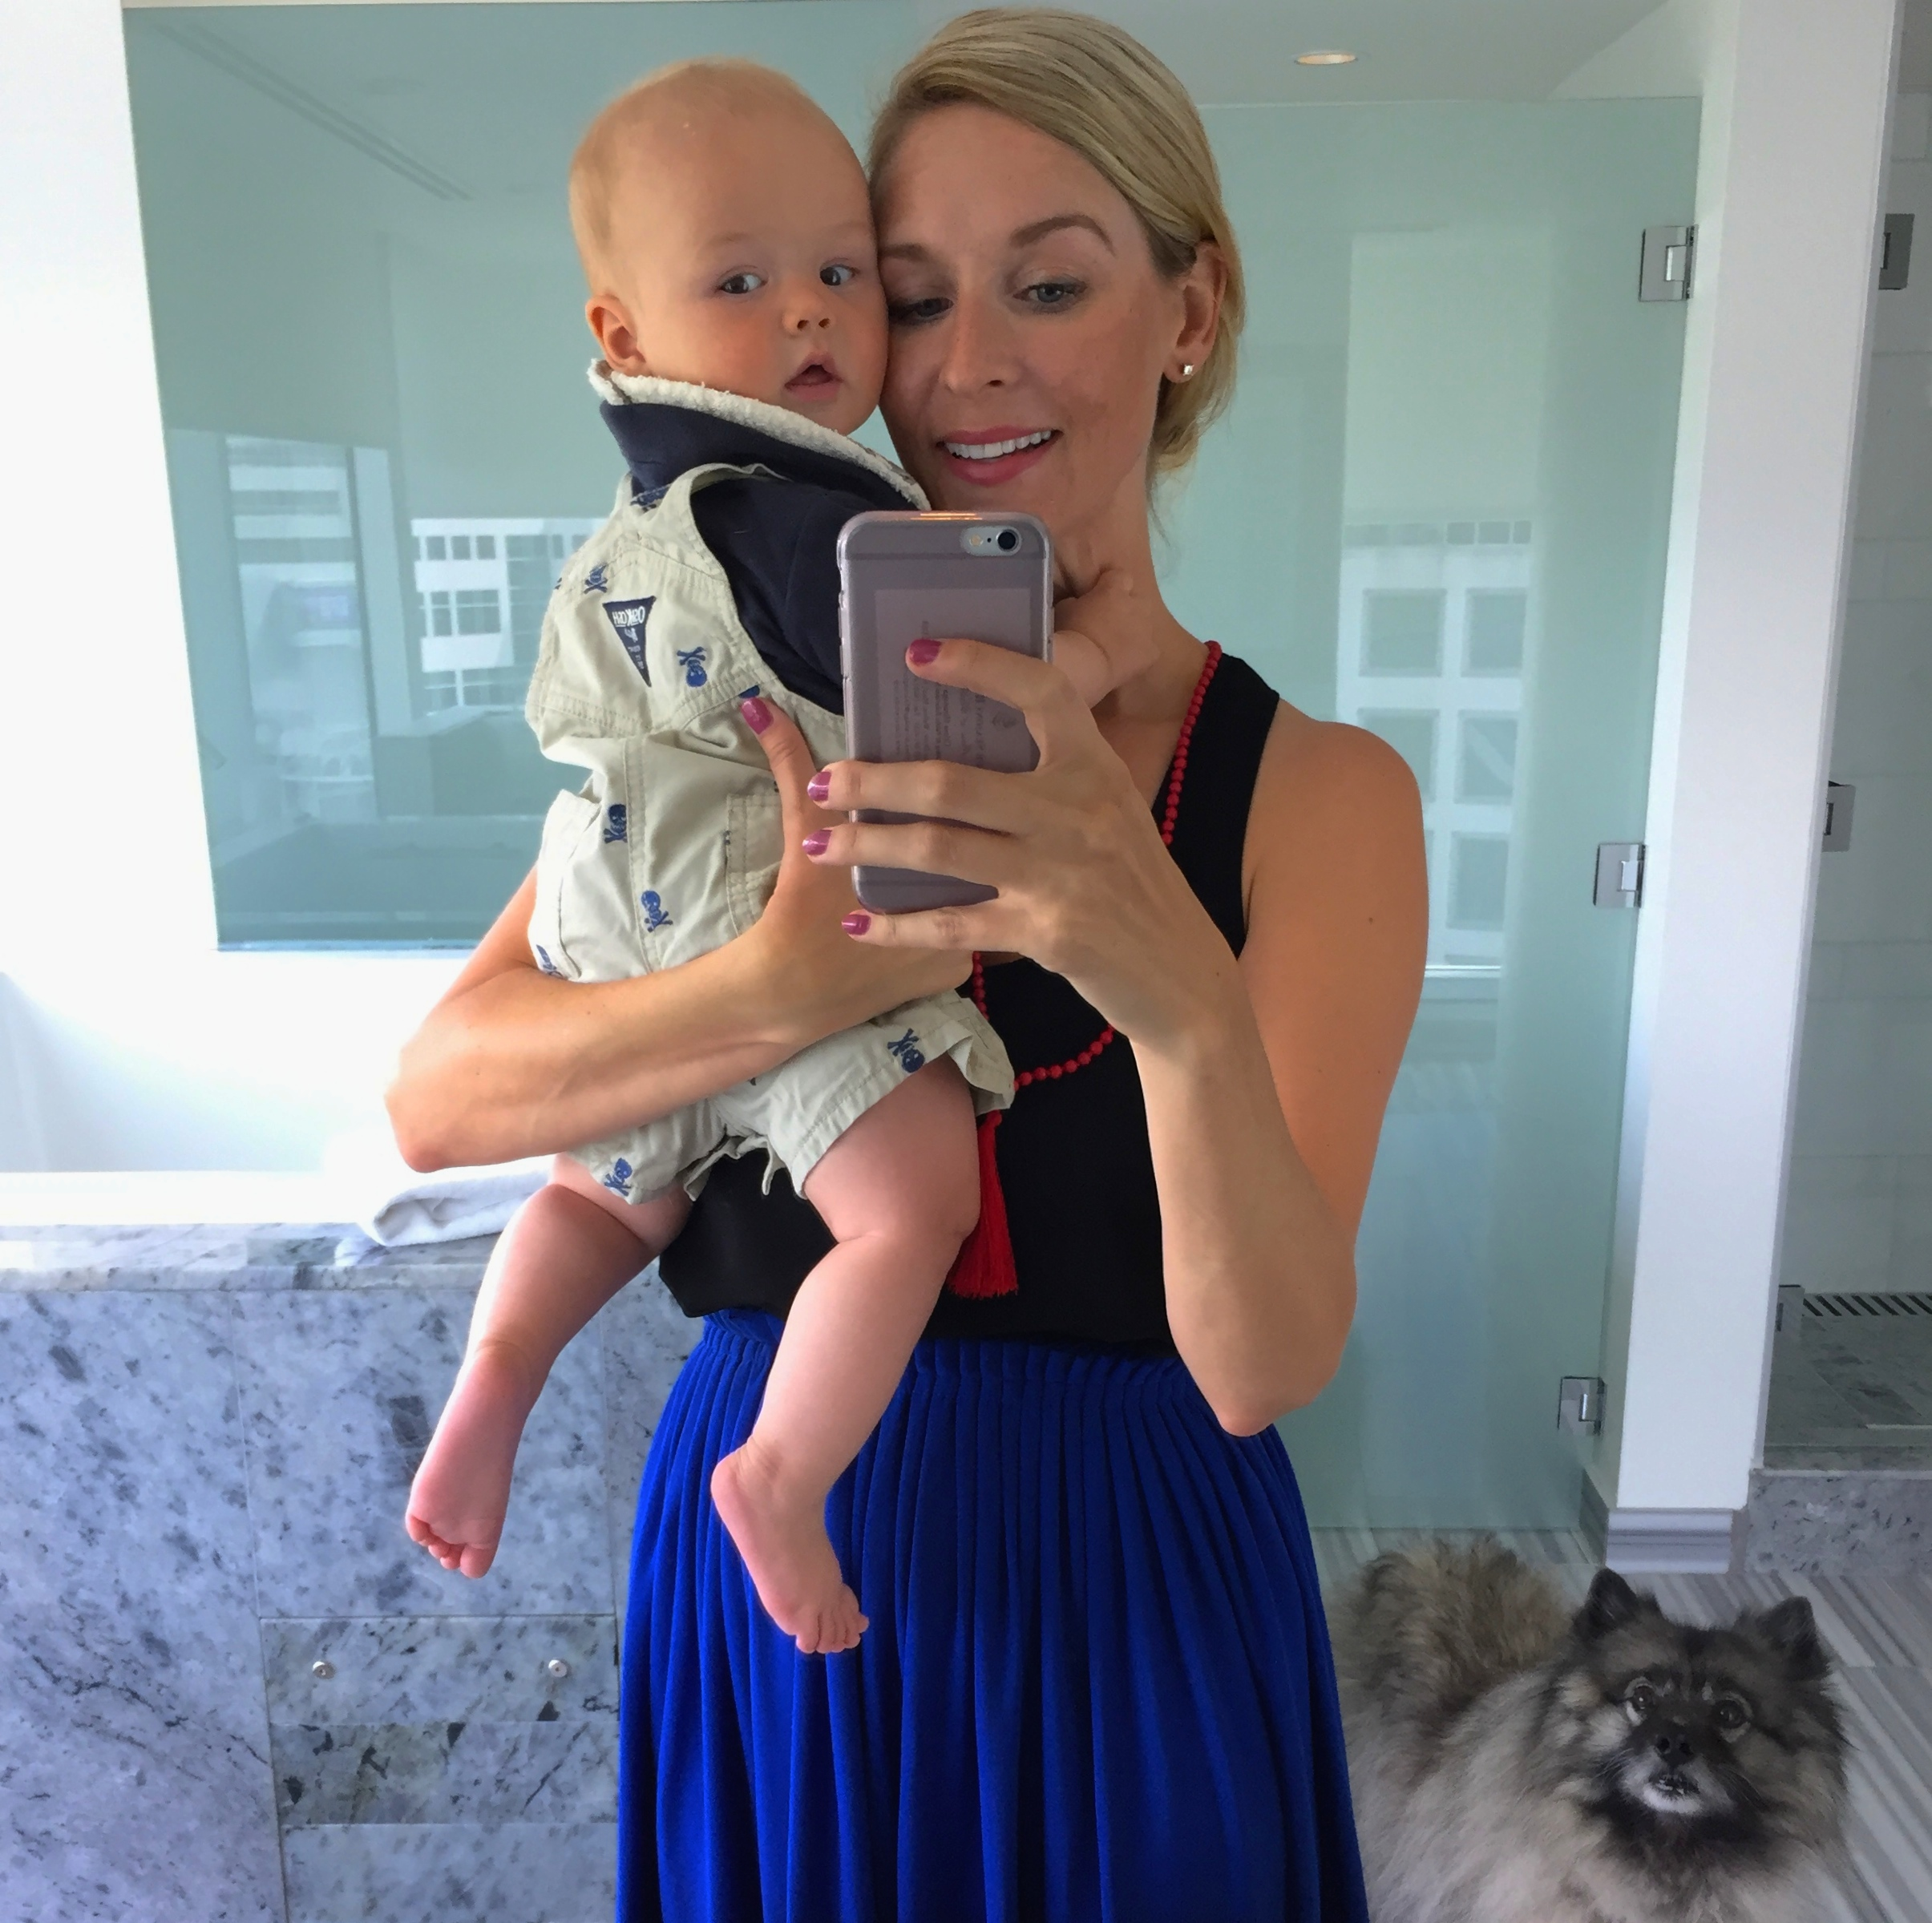 Bathroom selfie withBaby and Dog Styler. Note the hotel's pet-friendliness!